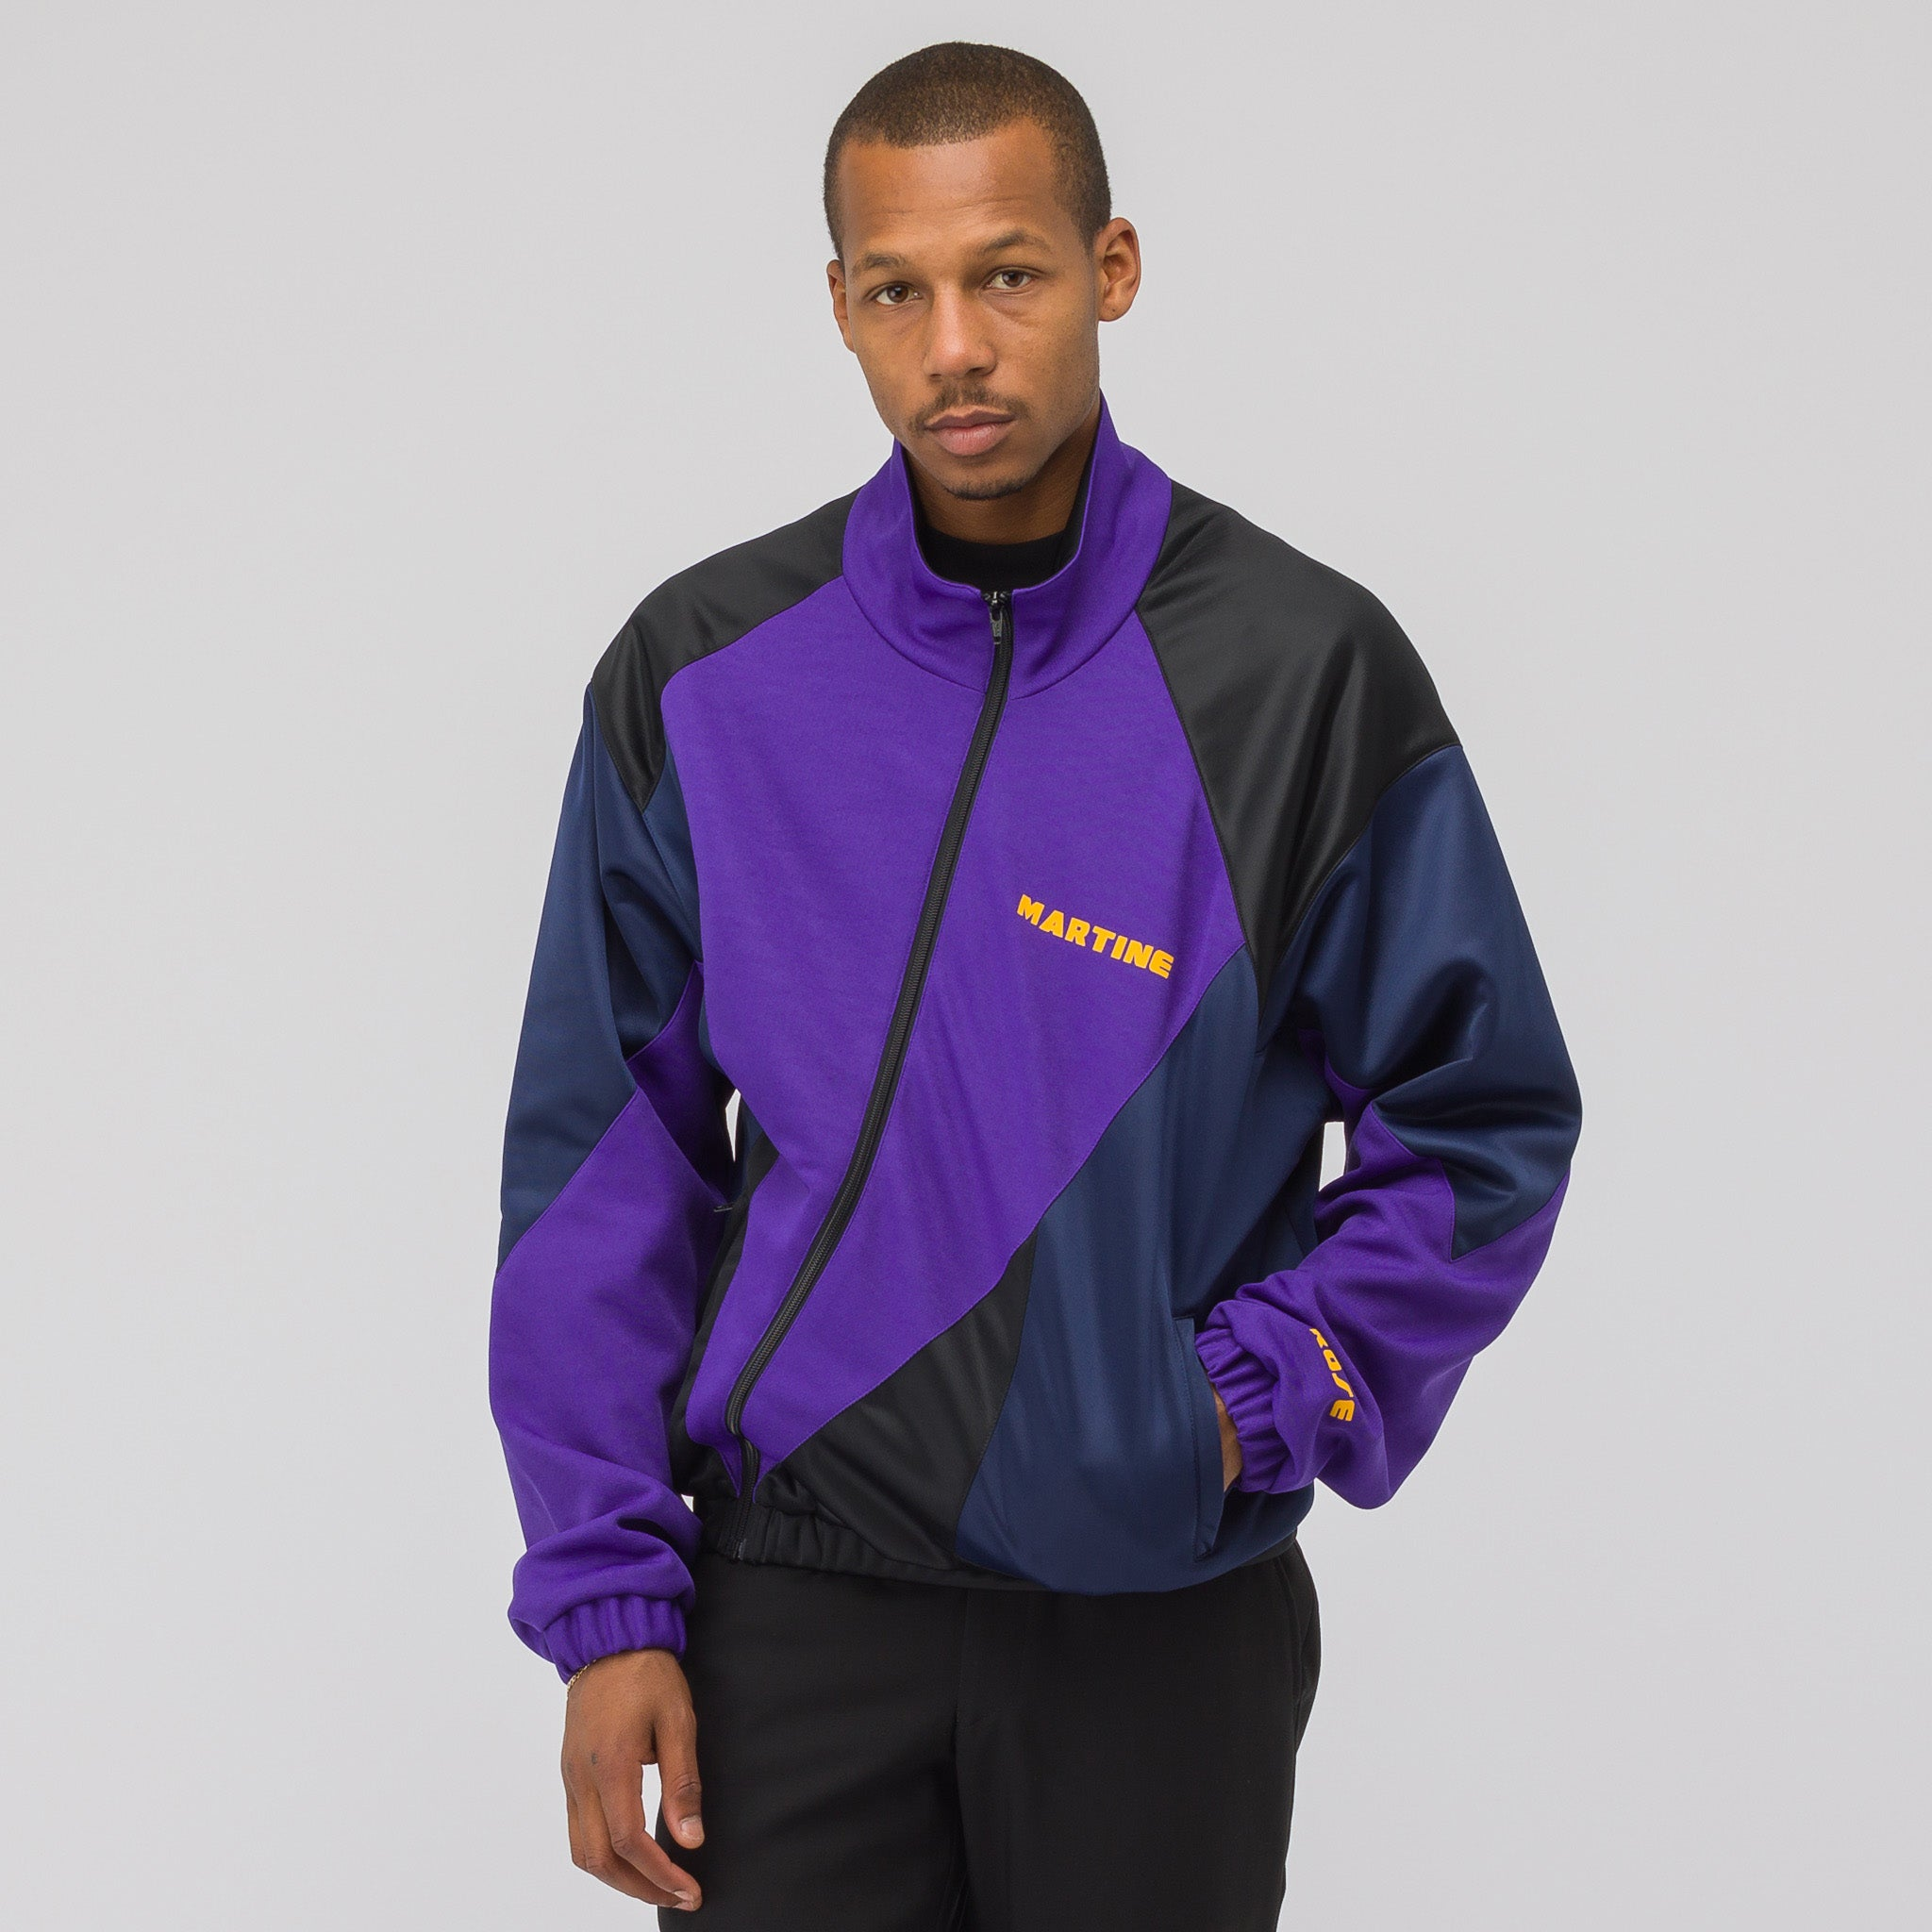 Twisted Track Jacket in Purple